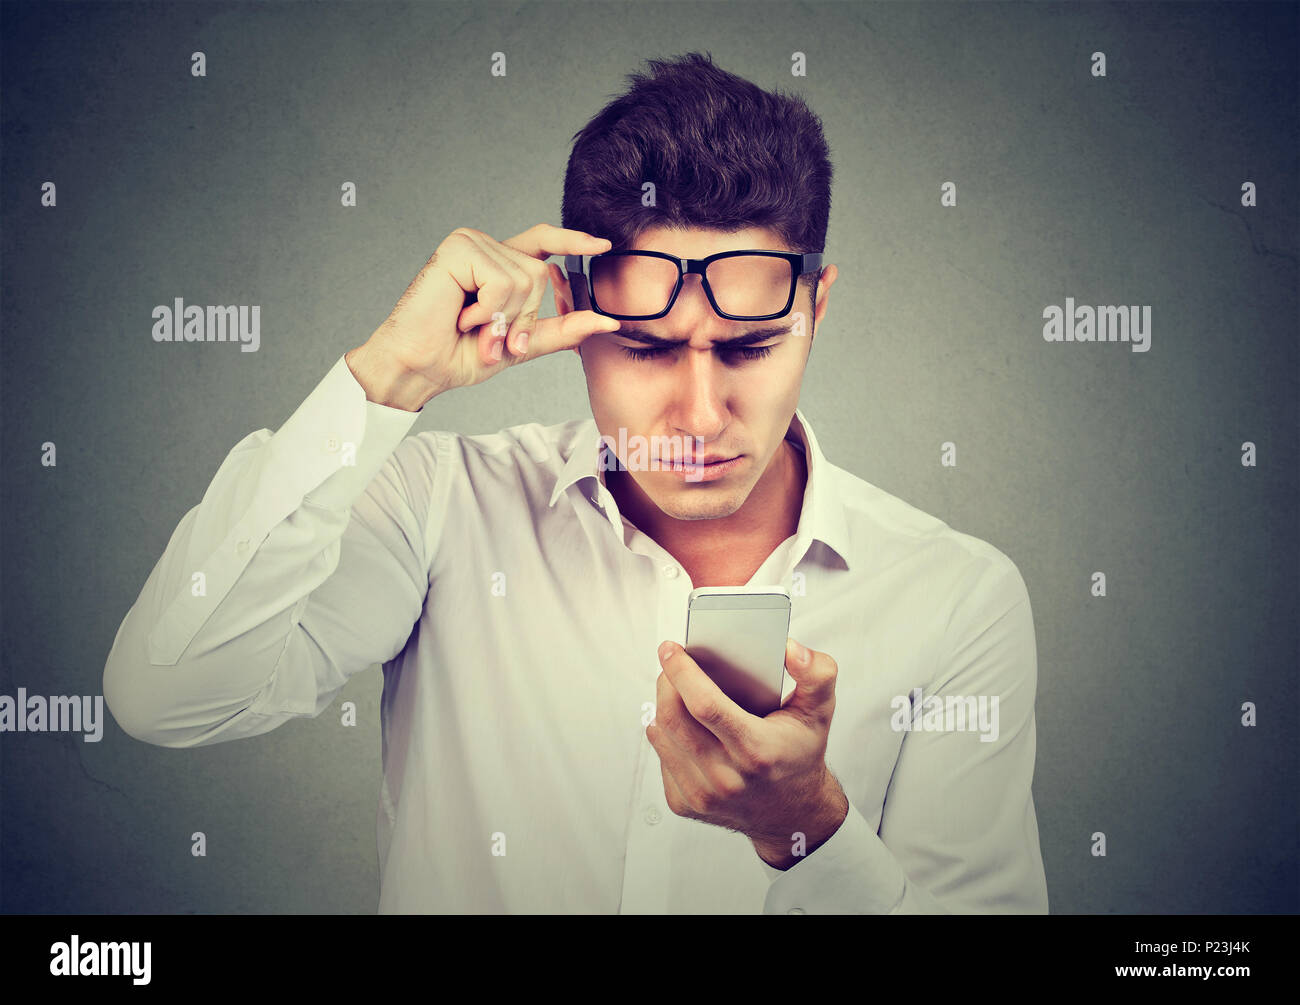 Young man with glasses having trouble seeing cell phone has vision problems. Bad text message. Human emotion perception - Stock Image